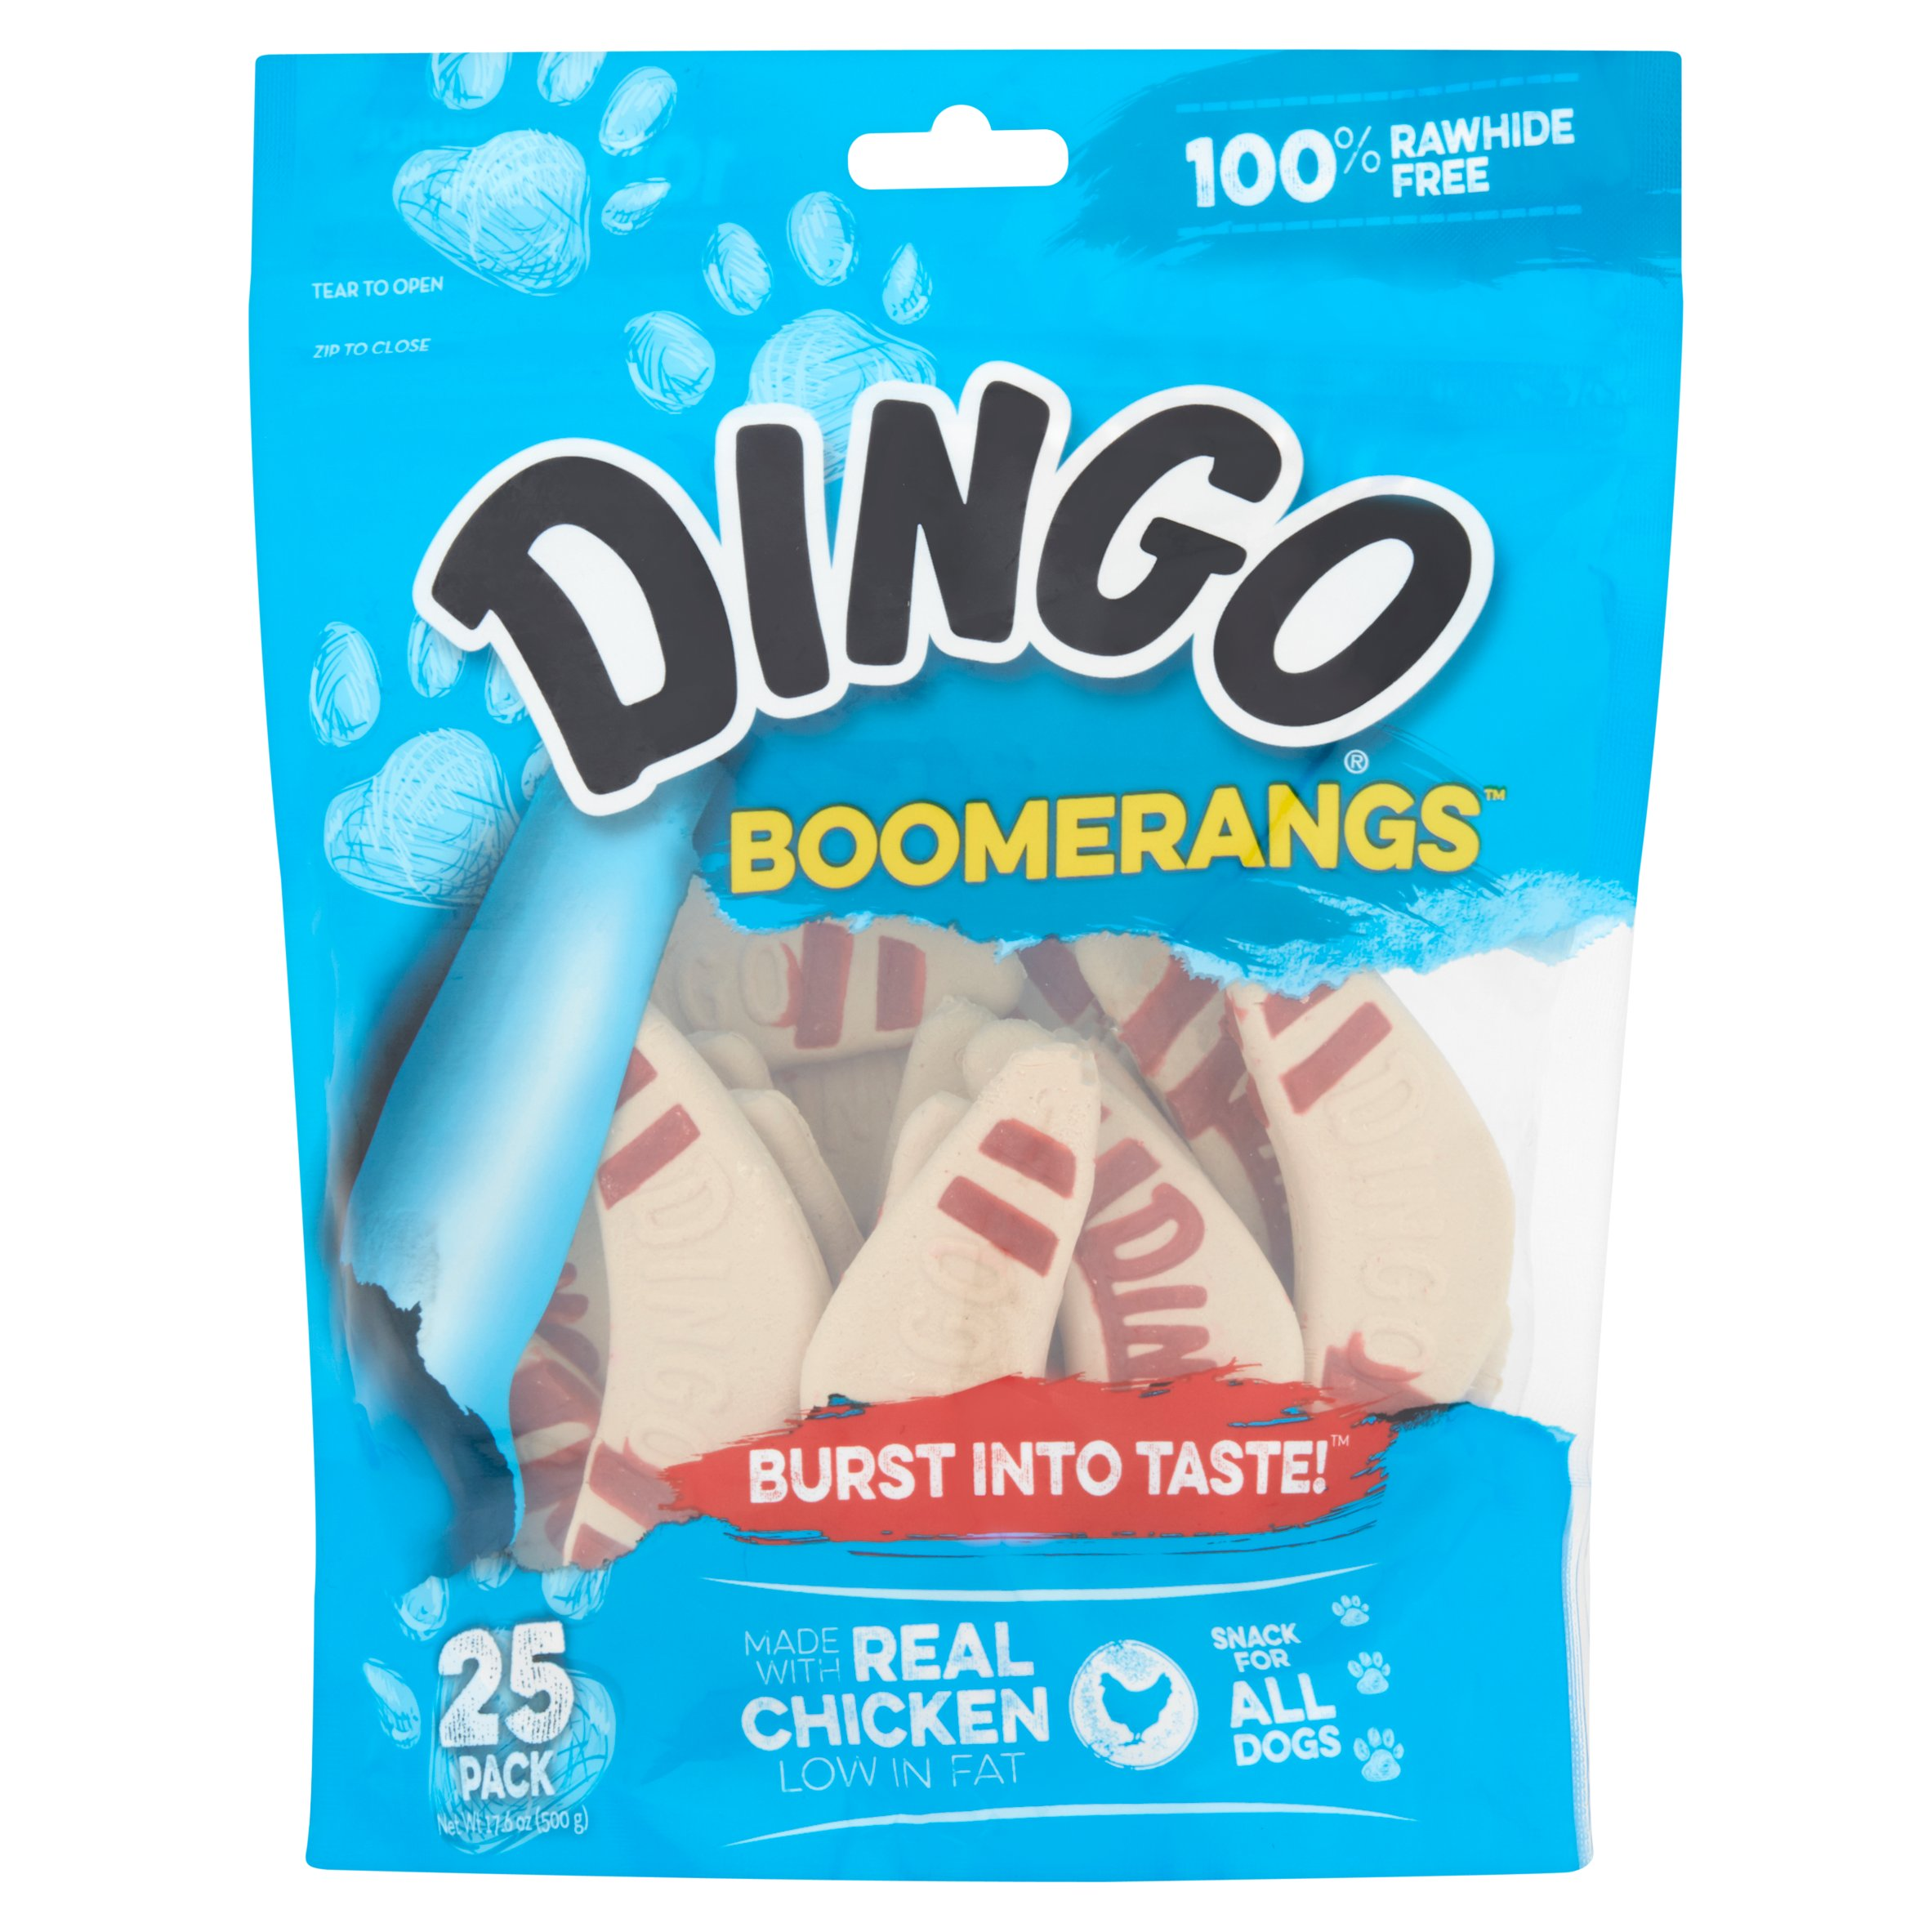 Dingo Boomerang Treats w/ Real Chicken, 100% Rawhide Free, 25-Count